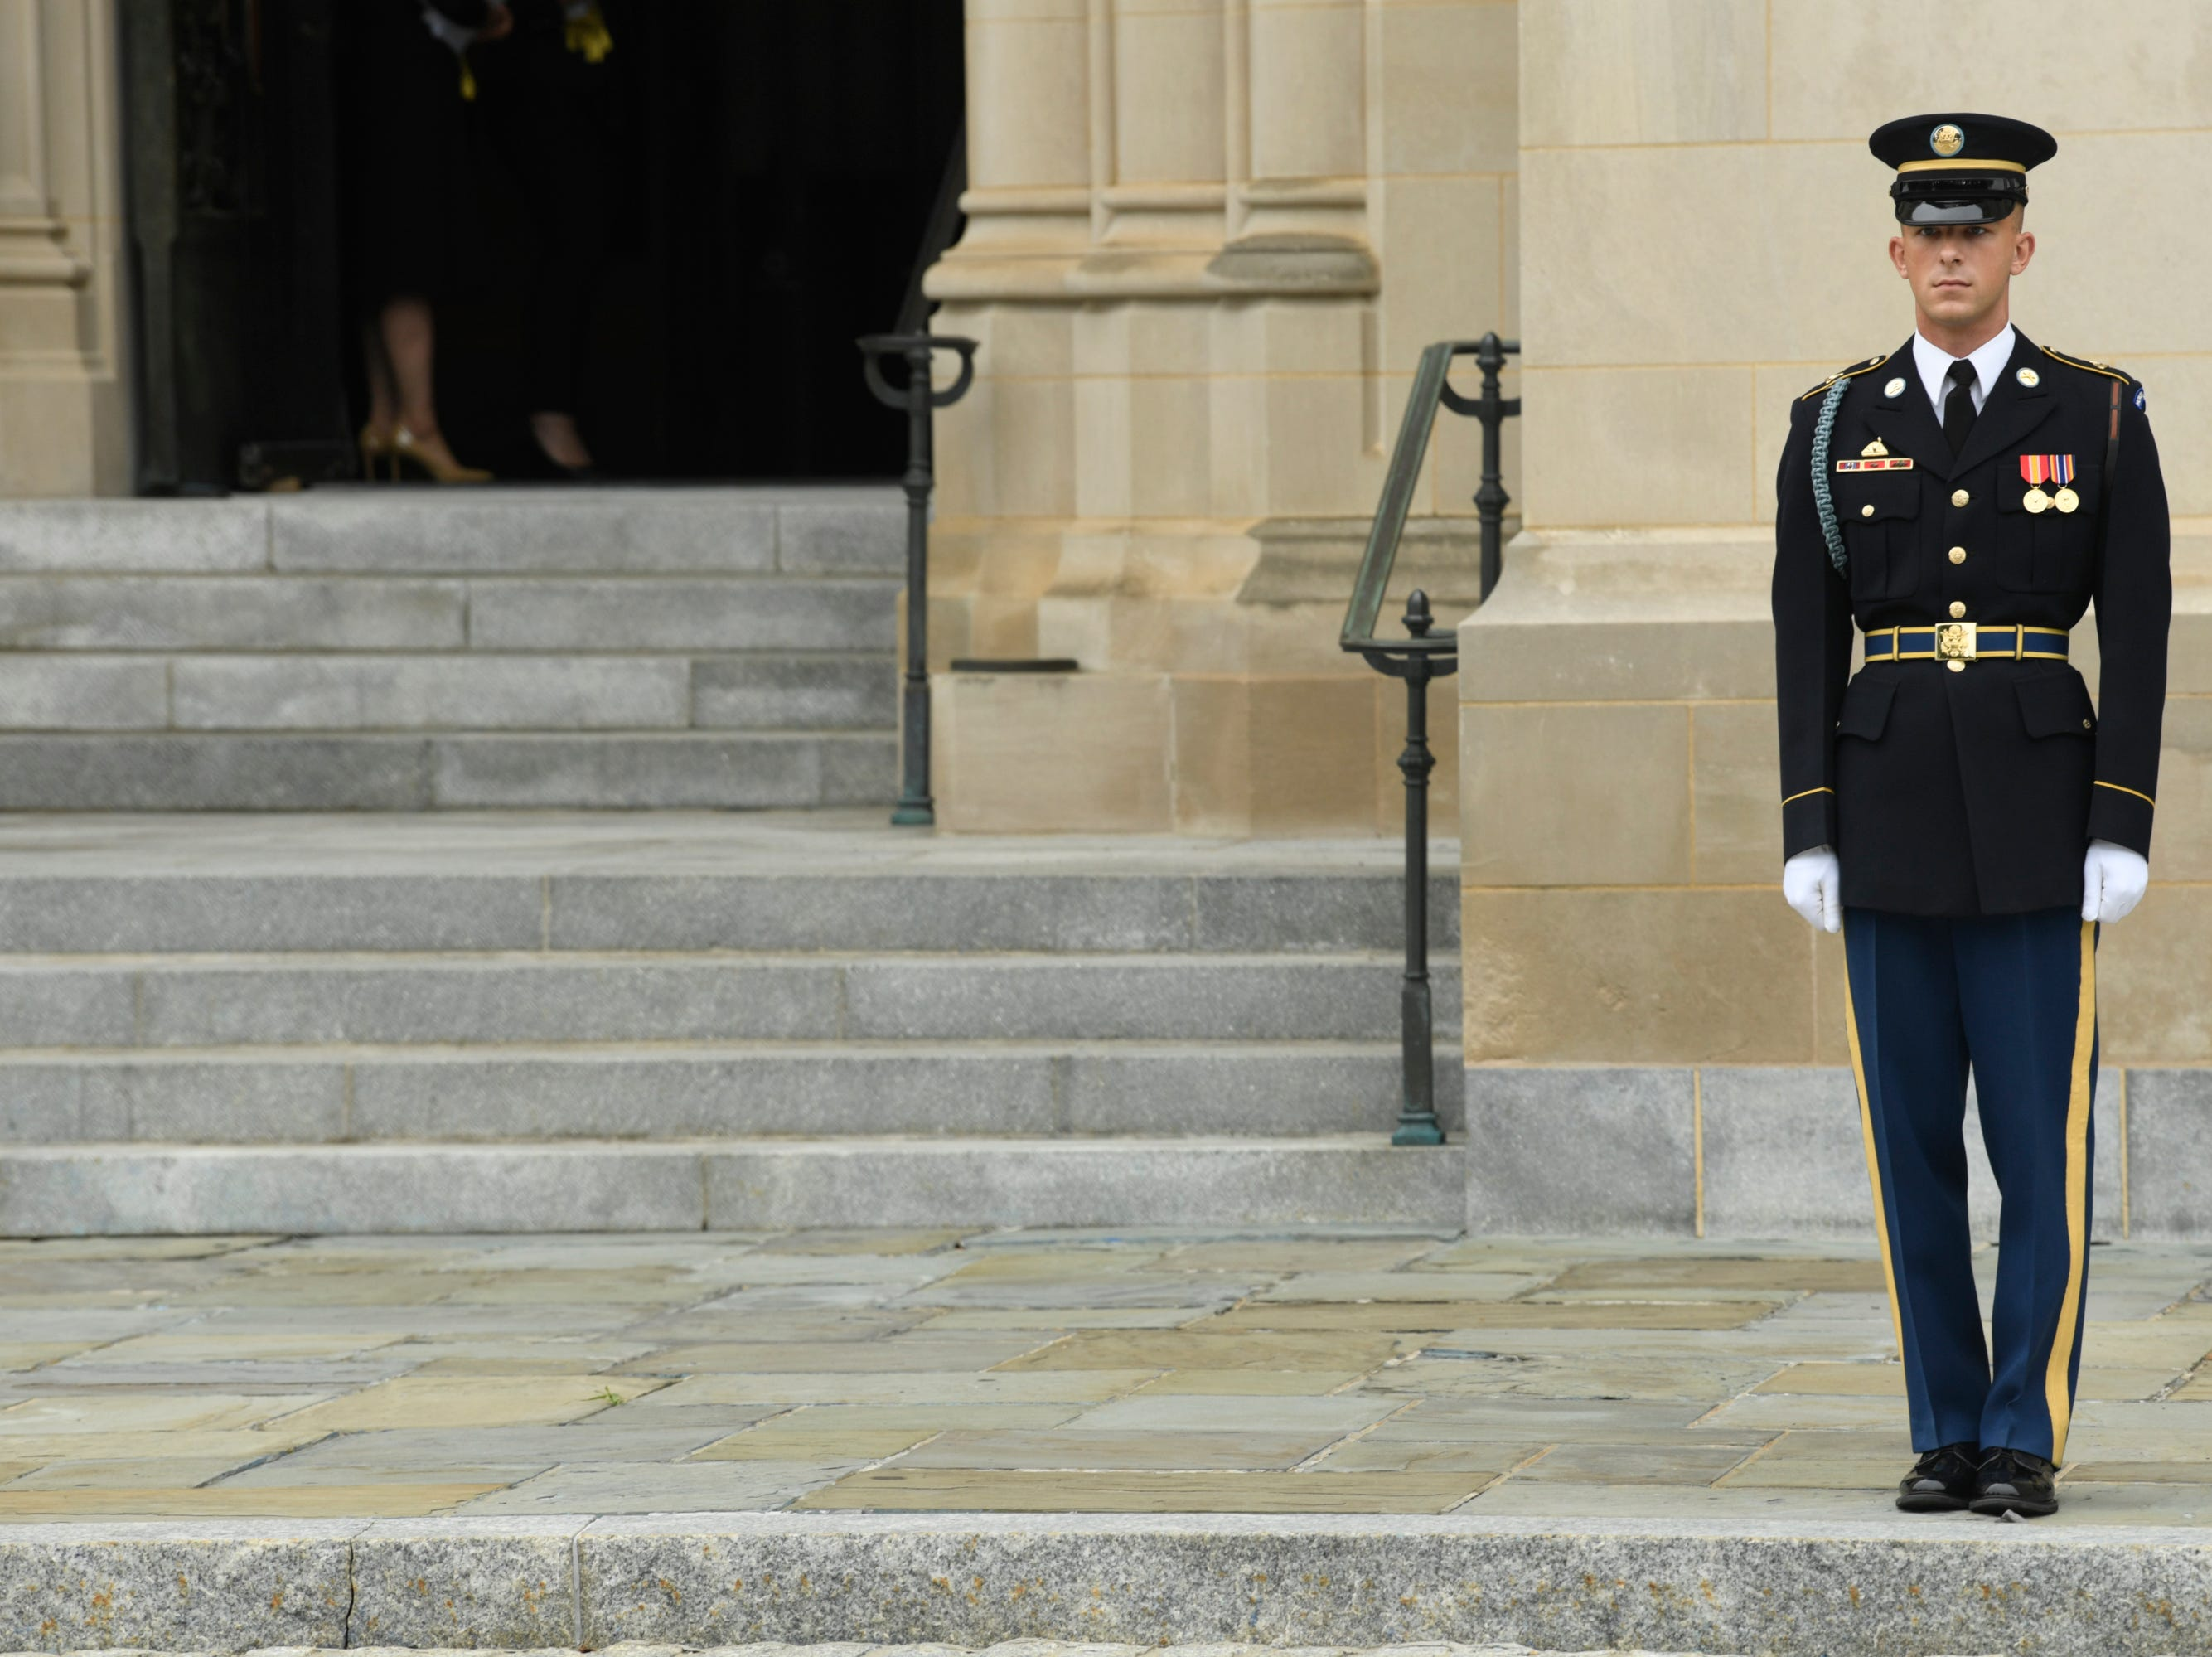 9/1/18 9:21:59 AM -- Washington, DC, U.S.A  -- Members of a military honor guard team await the arrival of John McCain's casket at the National Cathedral in Washington for a memorial service on Sept. 1, 2018. Sen. McCain died on Aug. 25. --    Photo by Jasper Colt, USA TODAY Staff